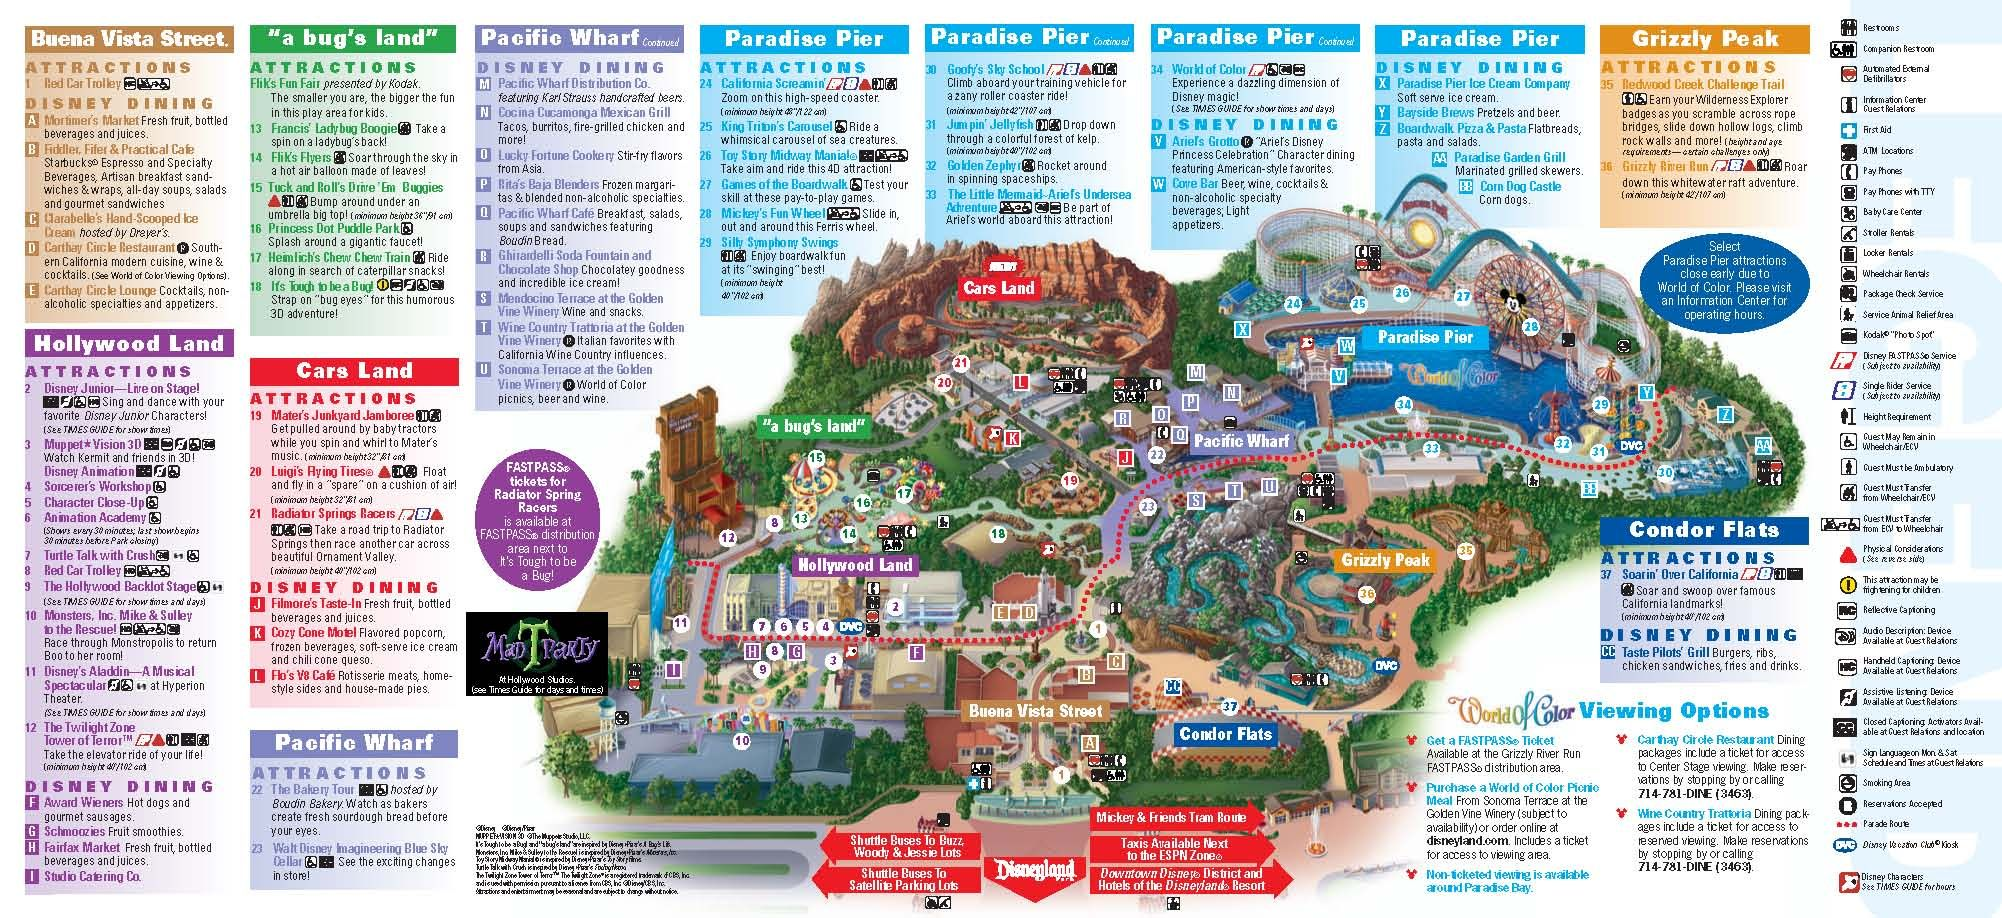 Disneyland Adventure Park Map Disneyland California Adventure Park Map | park maps disneyland  Disneyland Adventure Park Map